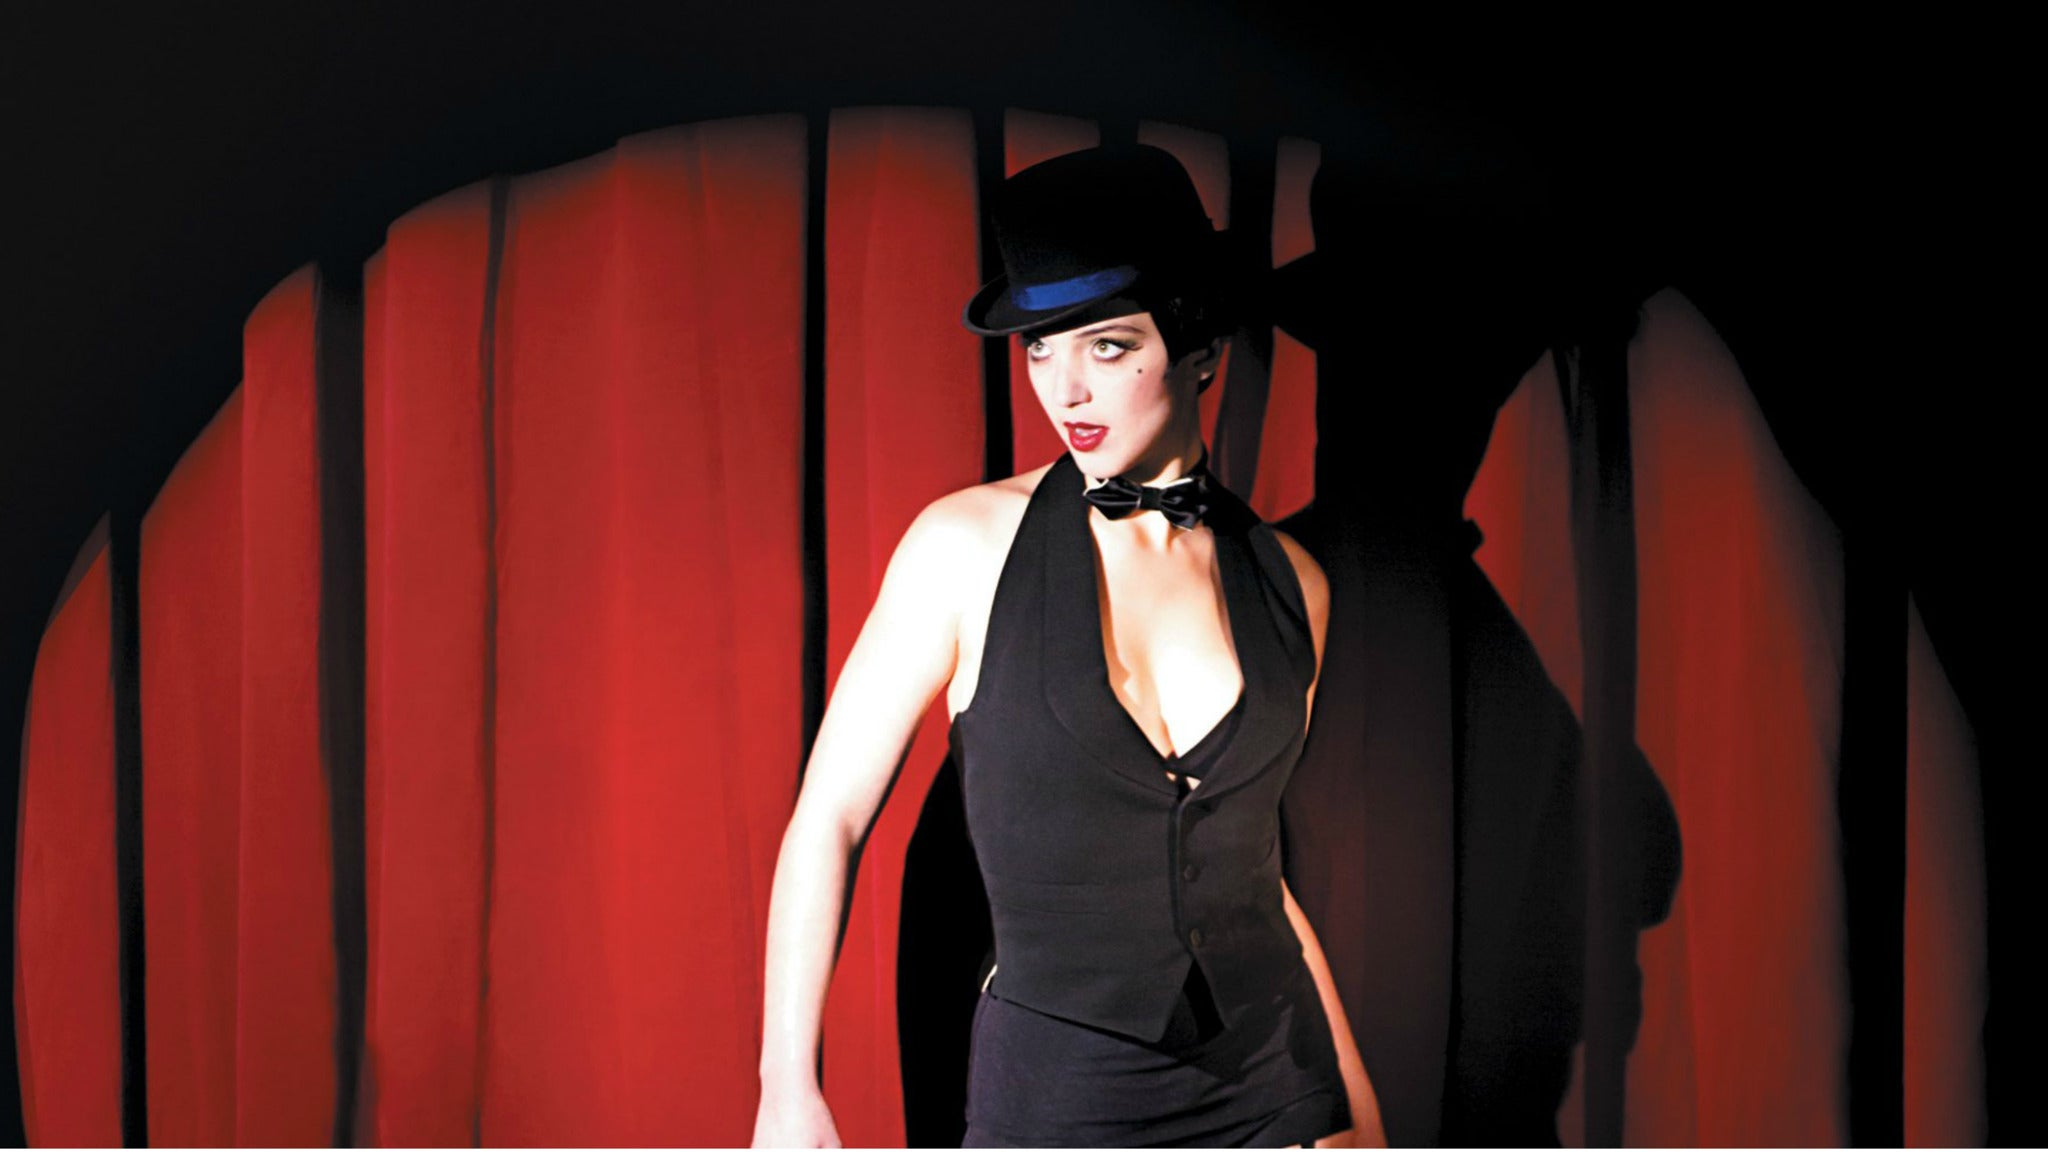 Cabaret at Yardley Hall Carlsen Center - KS